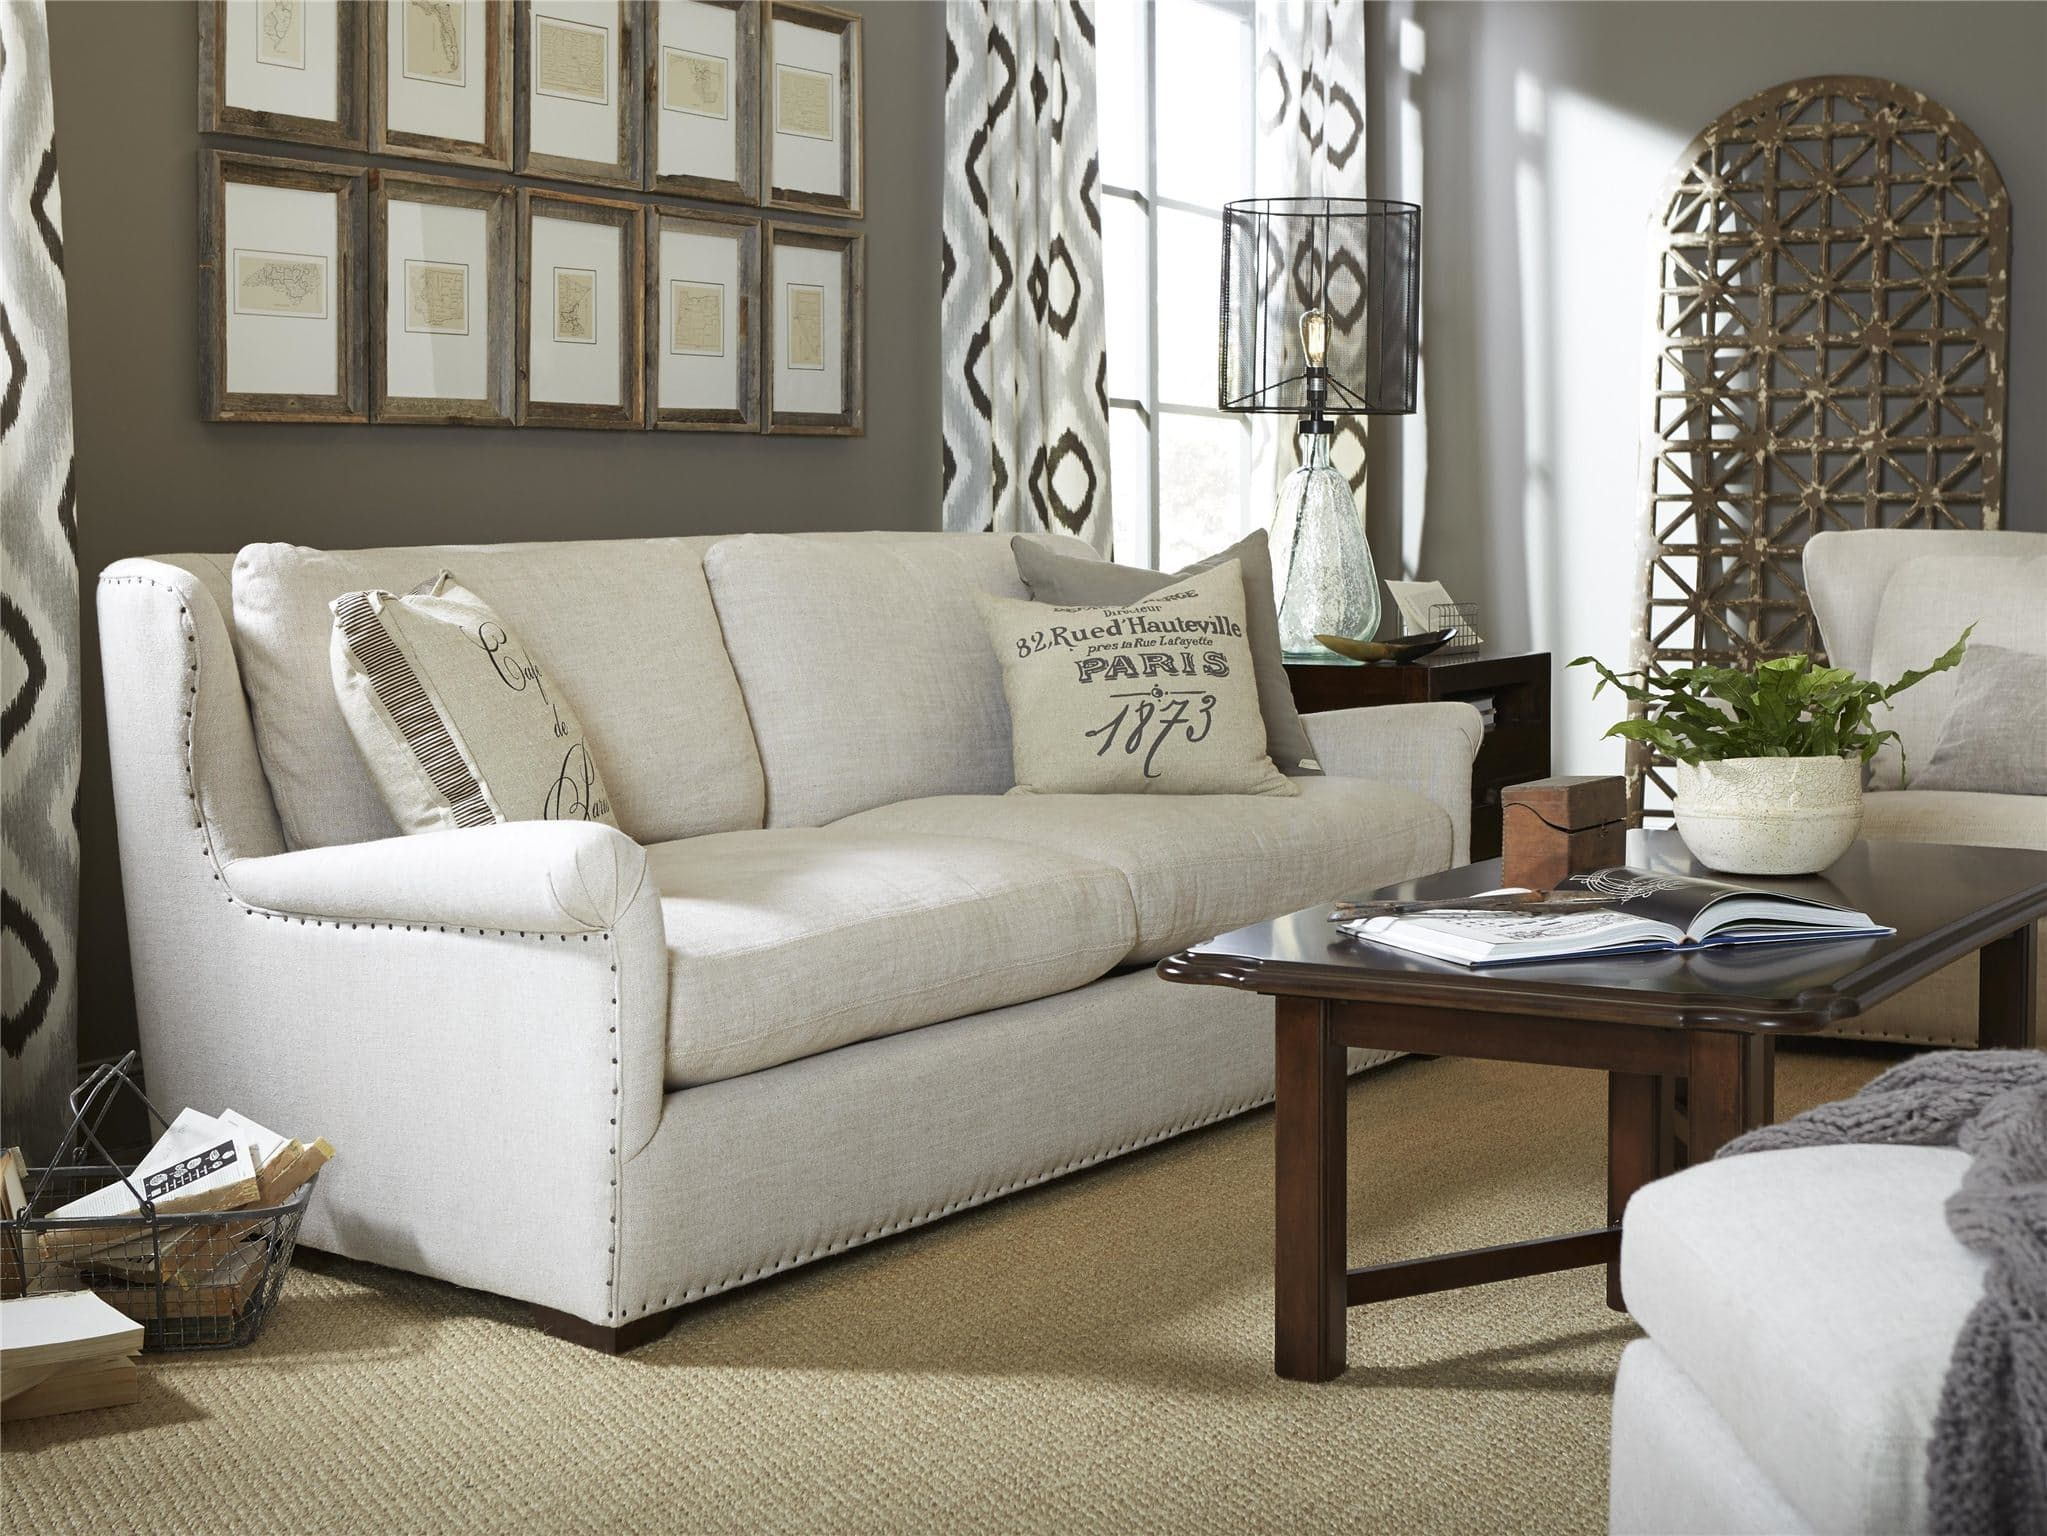 Universal Furniture Living Room Haven Sofa   Howell Furniture   Beaumont  And Nederland, TX And Lake Charles, LA